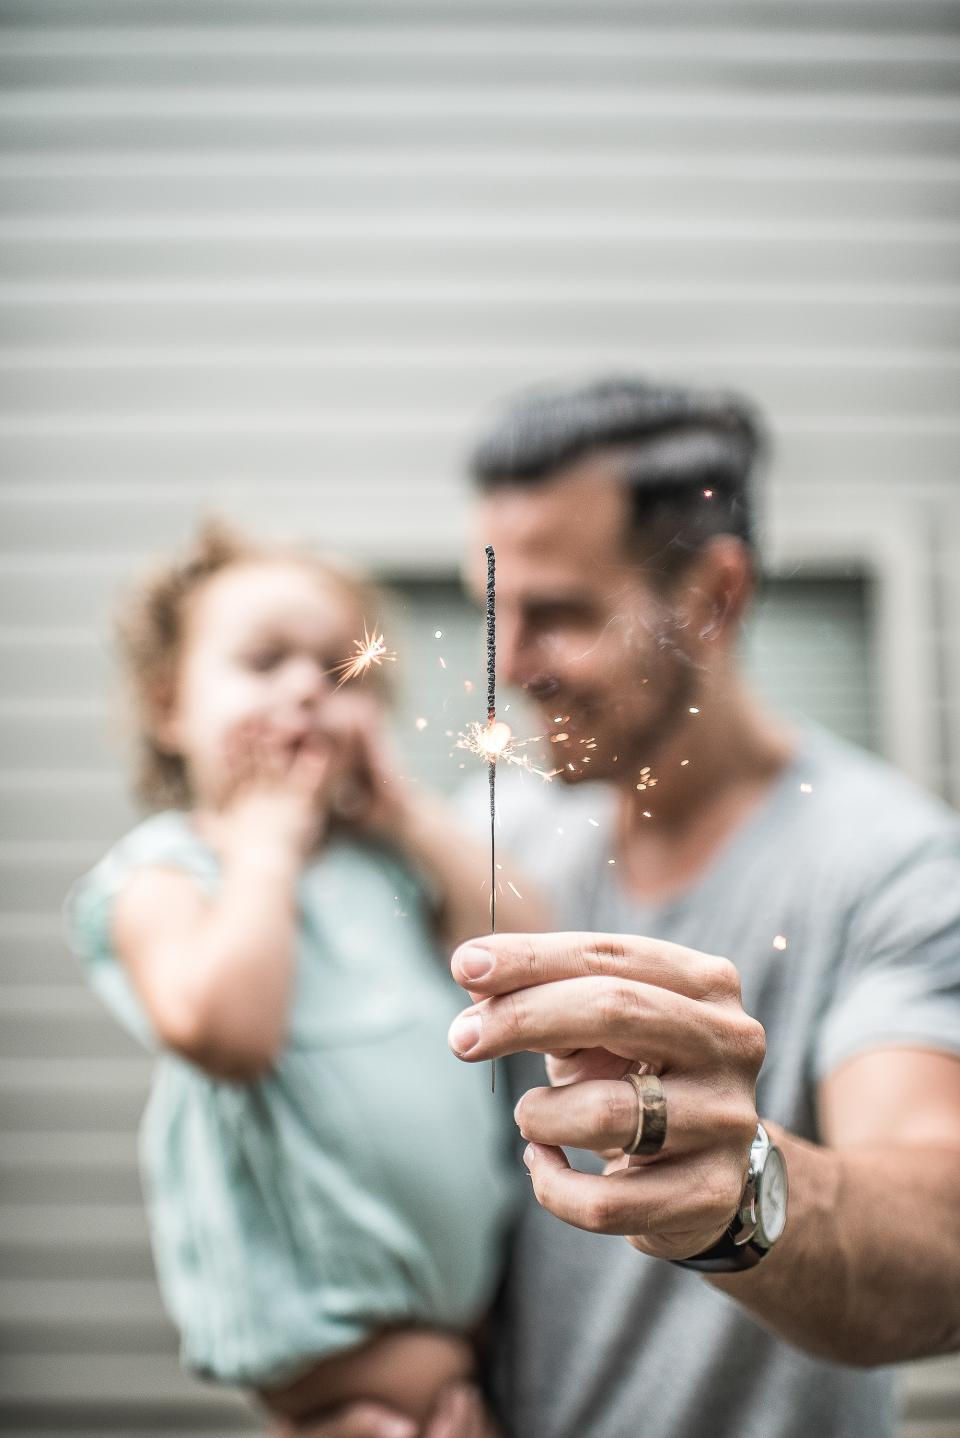 people parent man father carry daughter kid baby child hand stick sparkle light ring watch blur